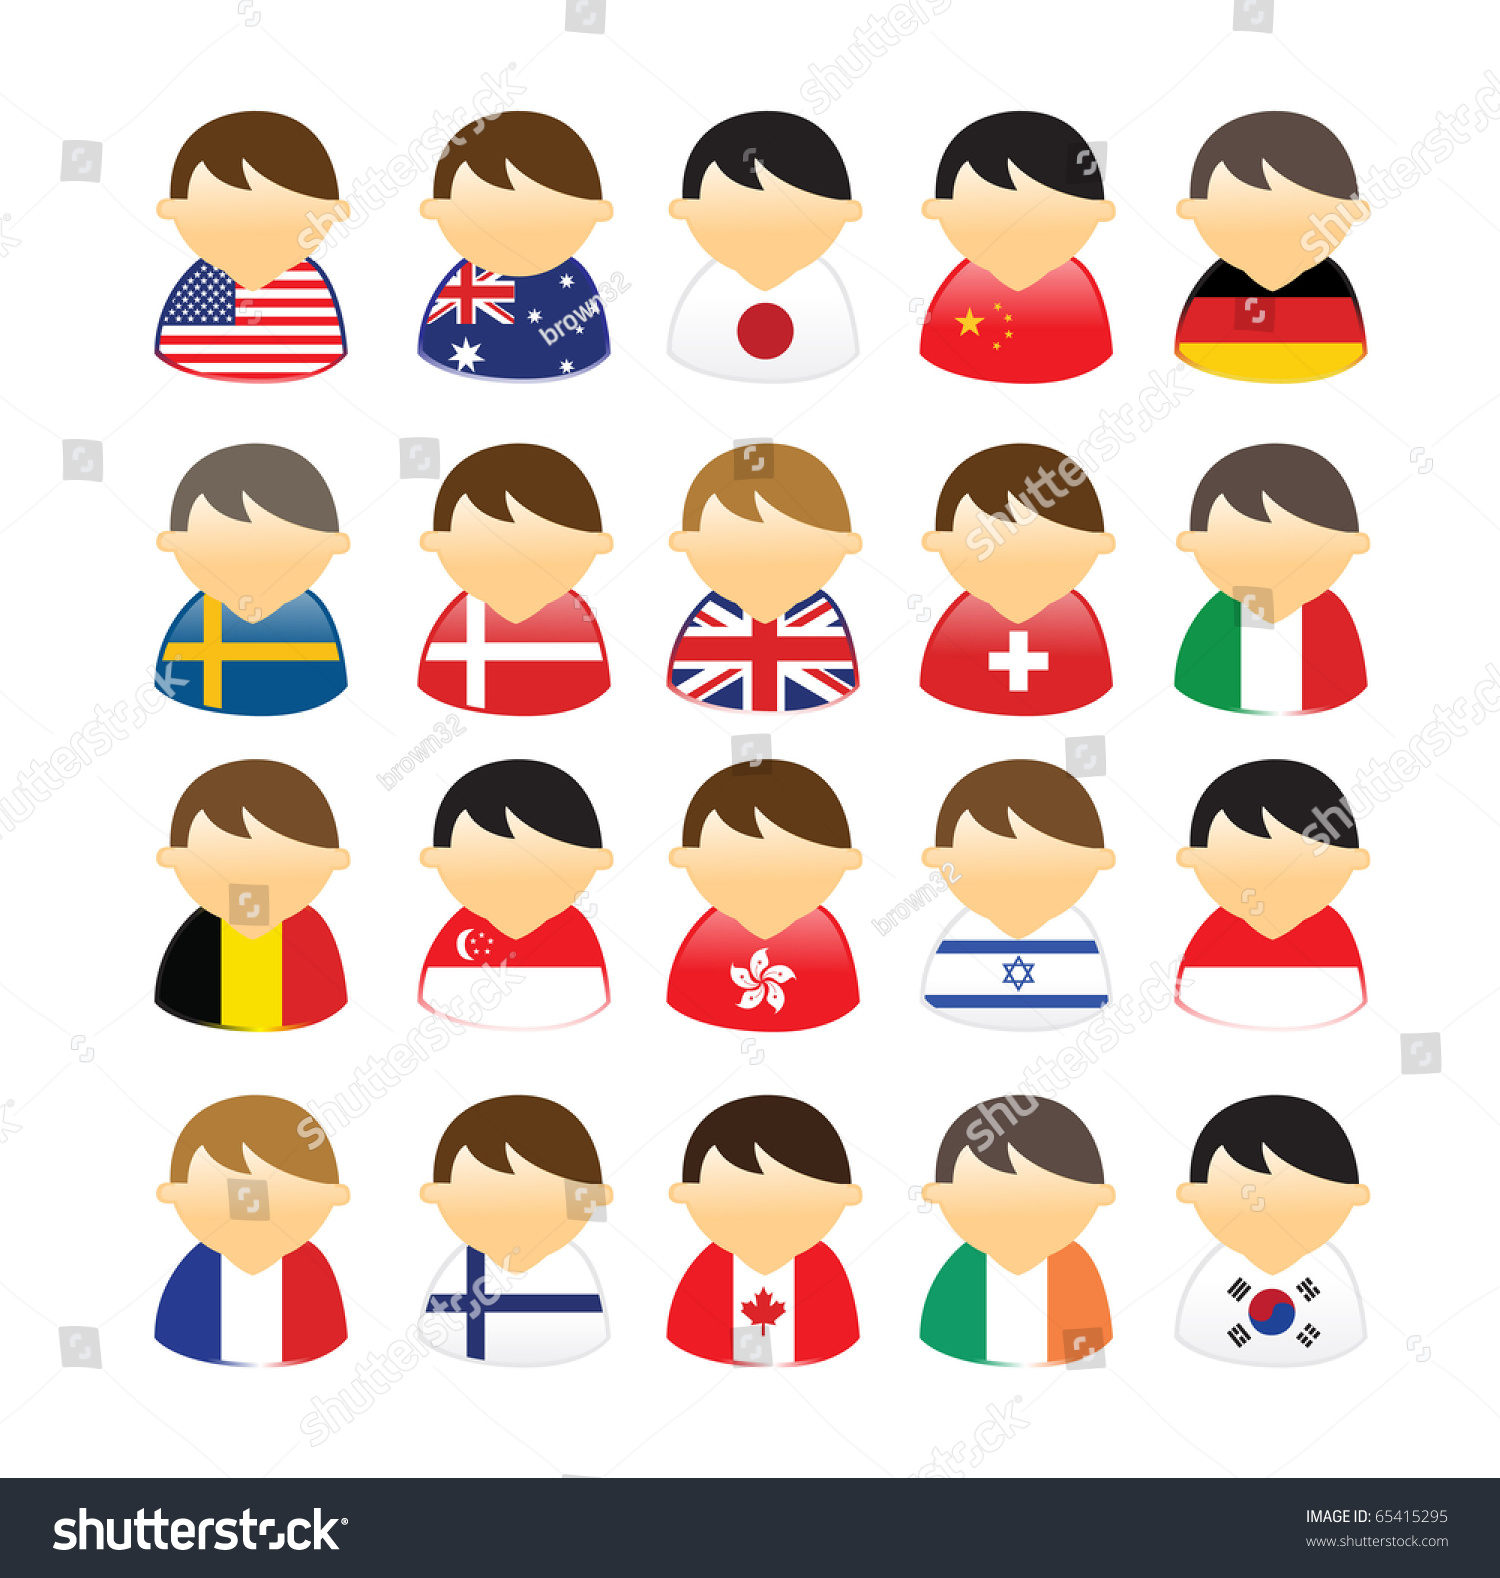 People Of Different Countries